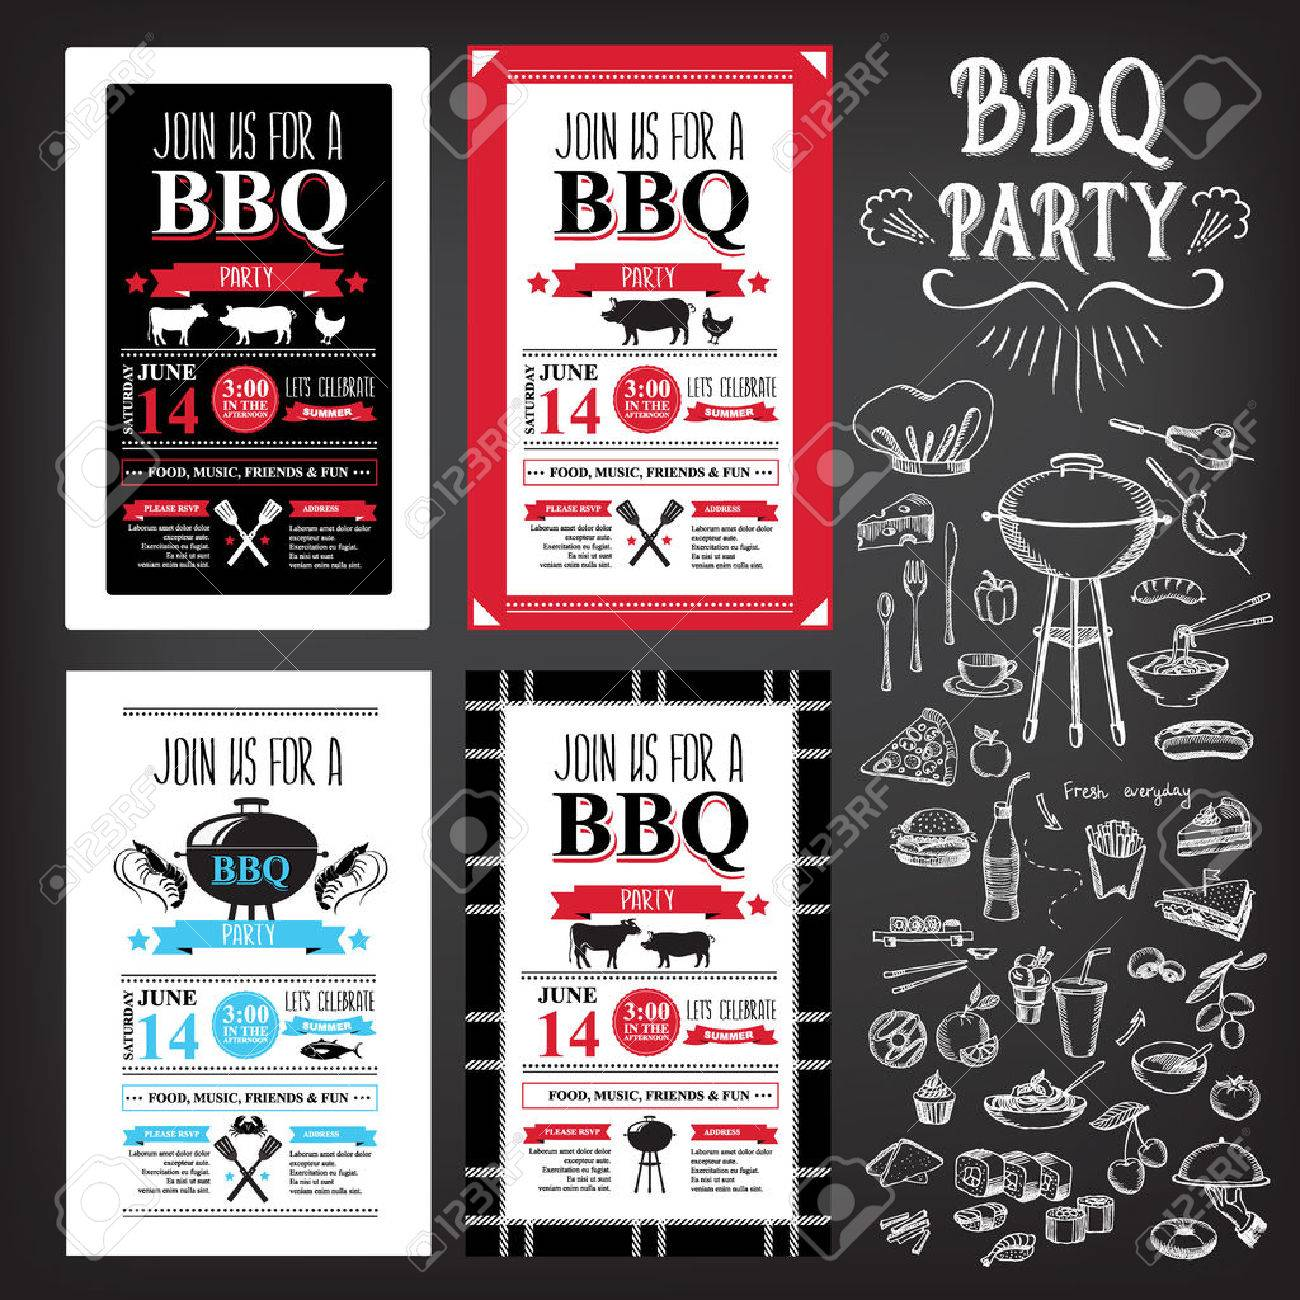 Barbecue Party Invitation. BBQ Template Menu Design Royalty Free ...